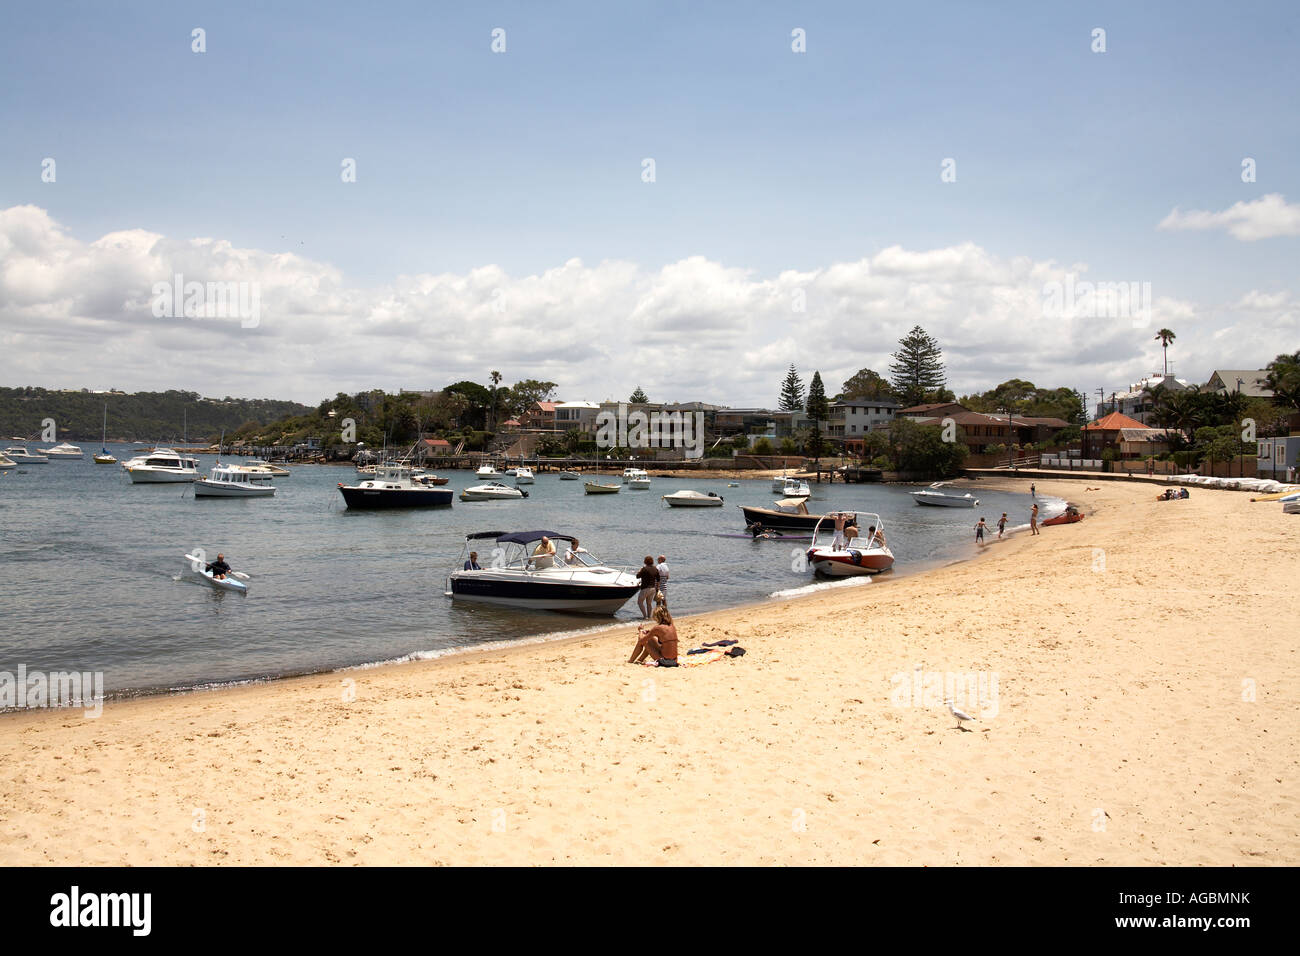 Beach and boats at Watsons Bay in Sydney New South Wales NSW Australia - Stock Image